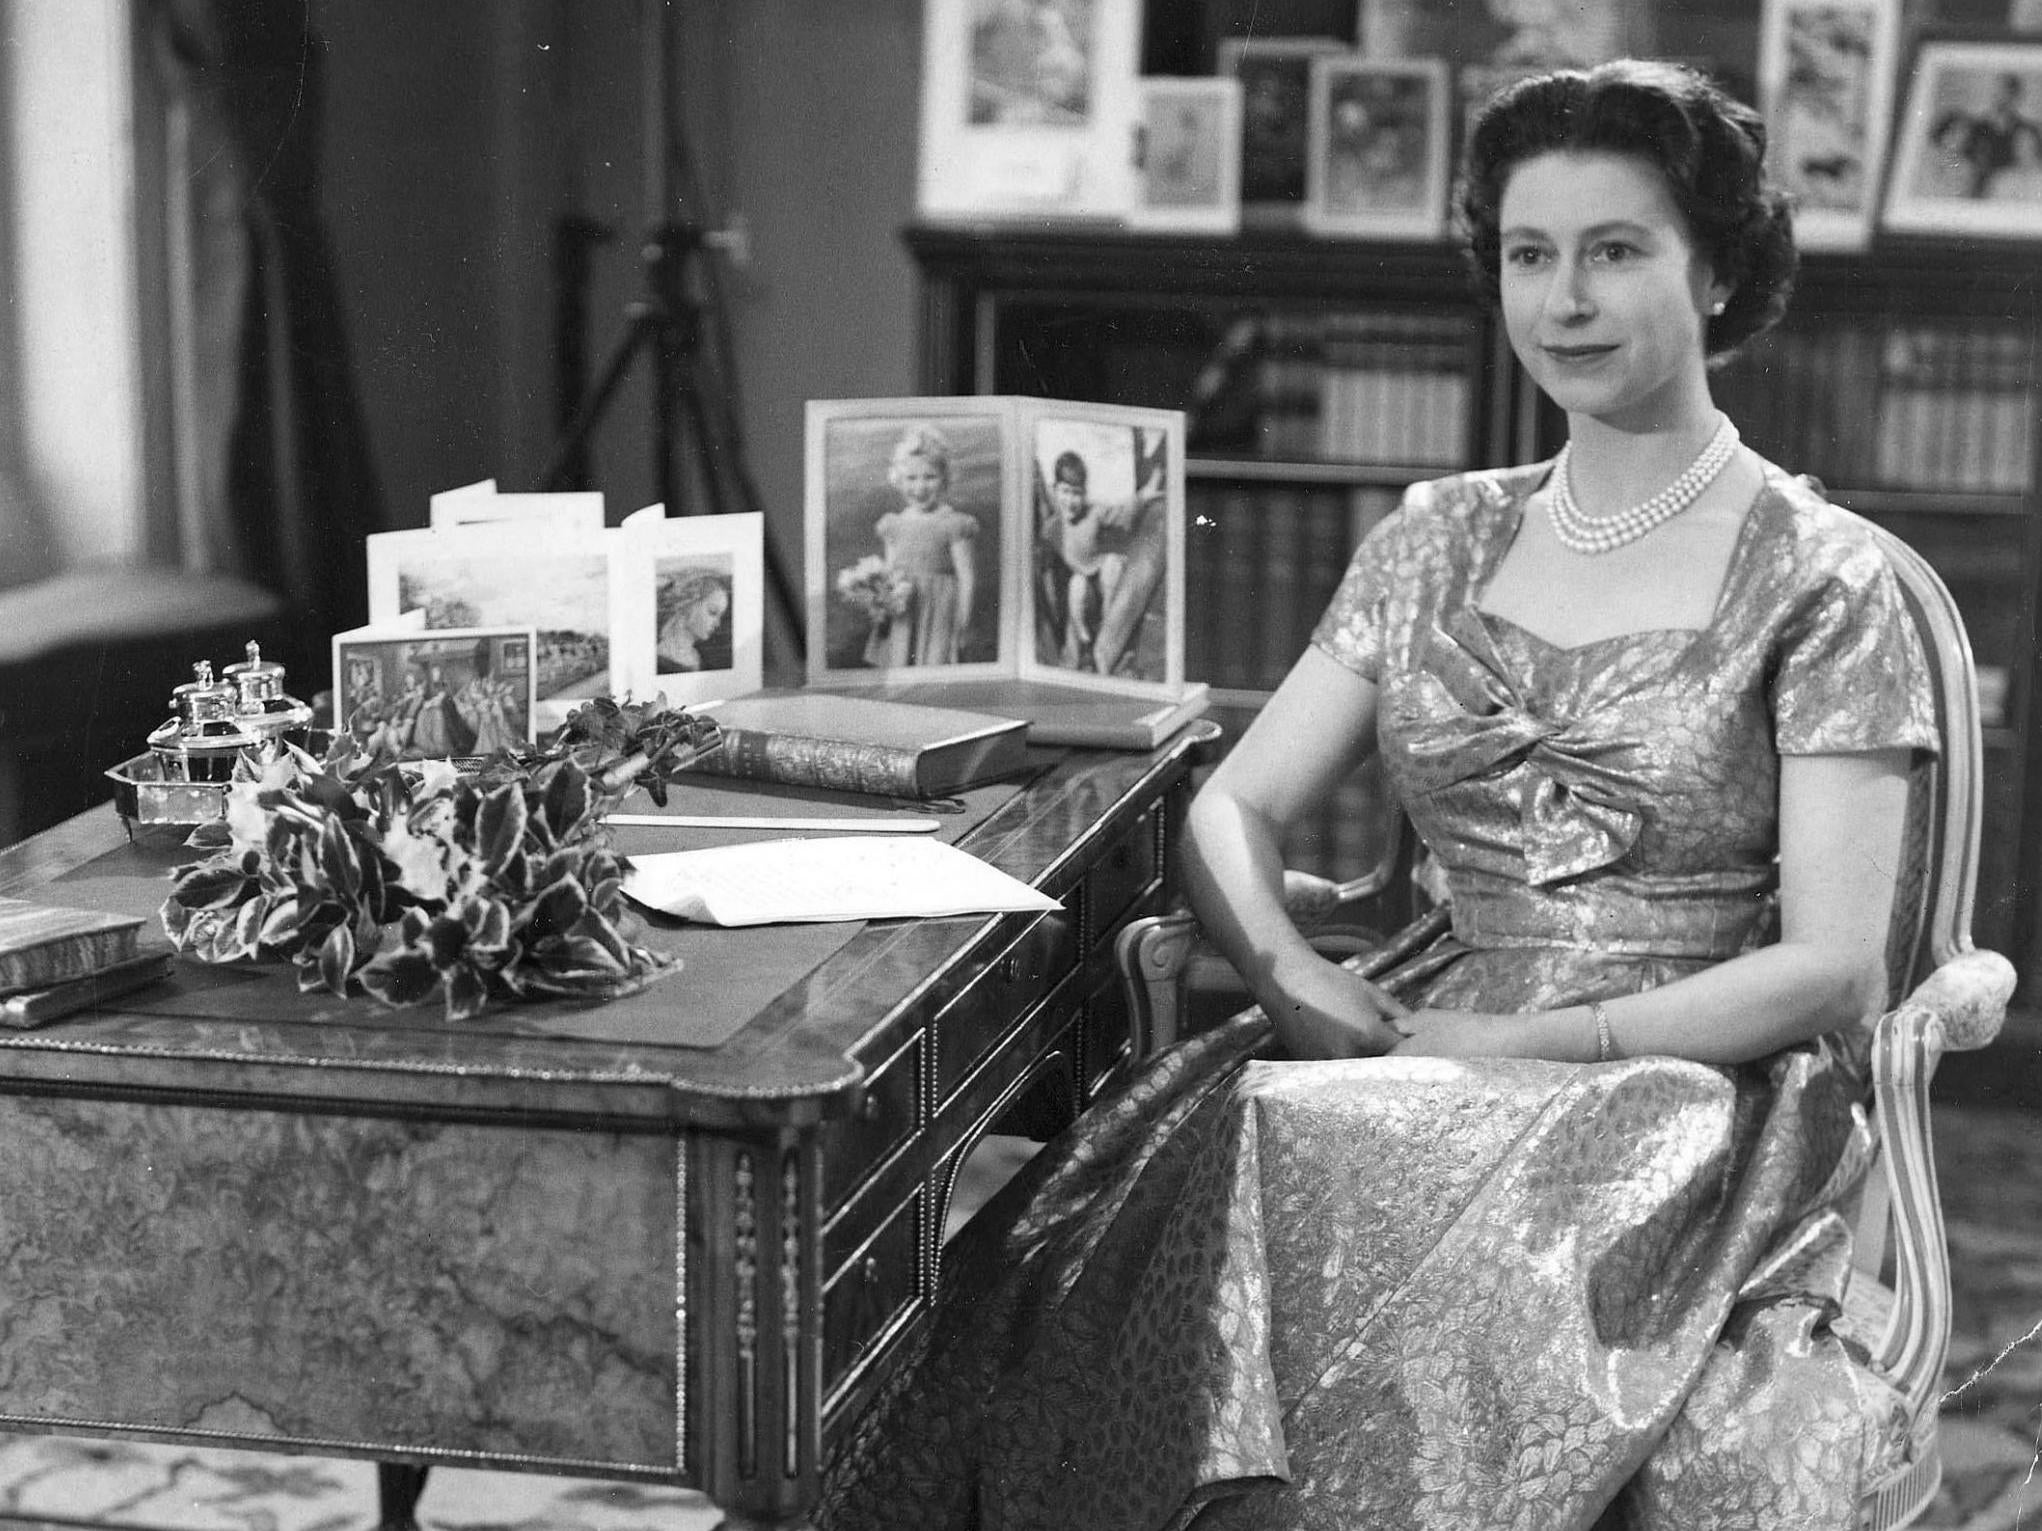 The Queen's Christmas speech: Looking back at the monarch's first televised address in 1957